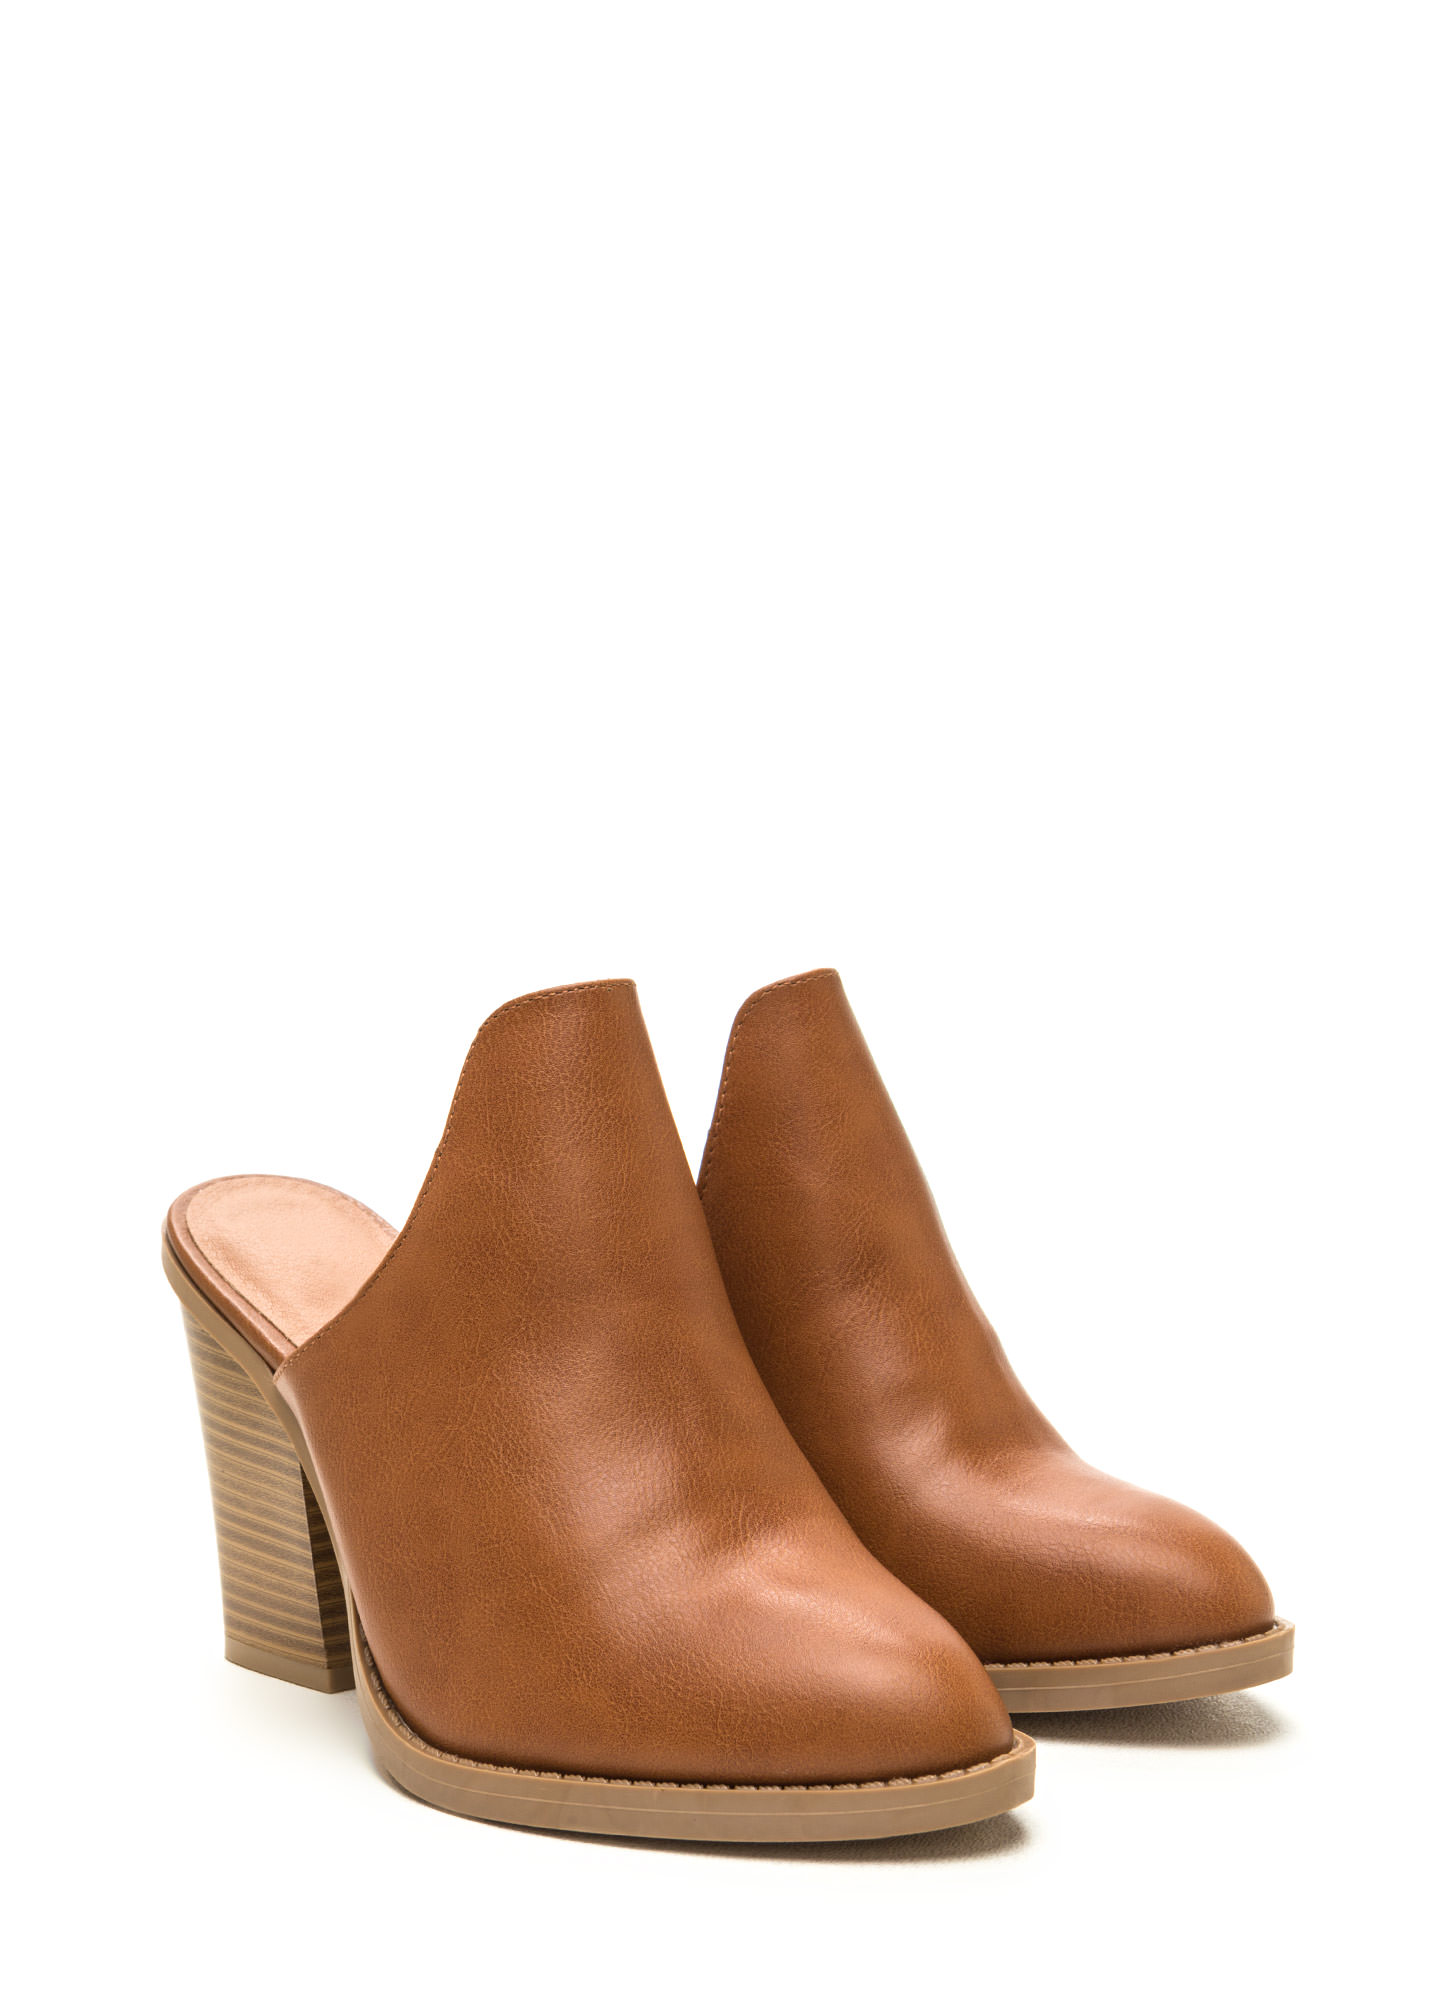 Case In Point Chunky Mule Heels WHISKY